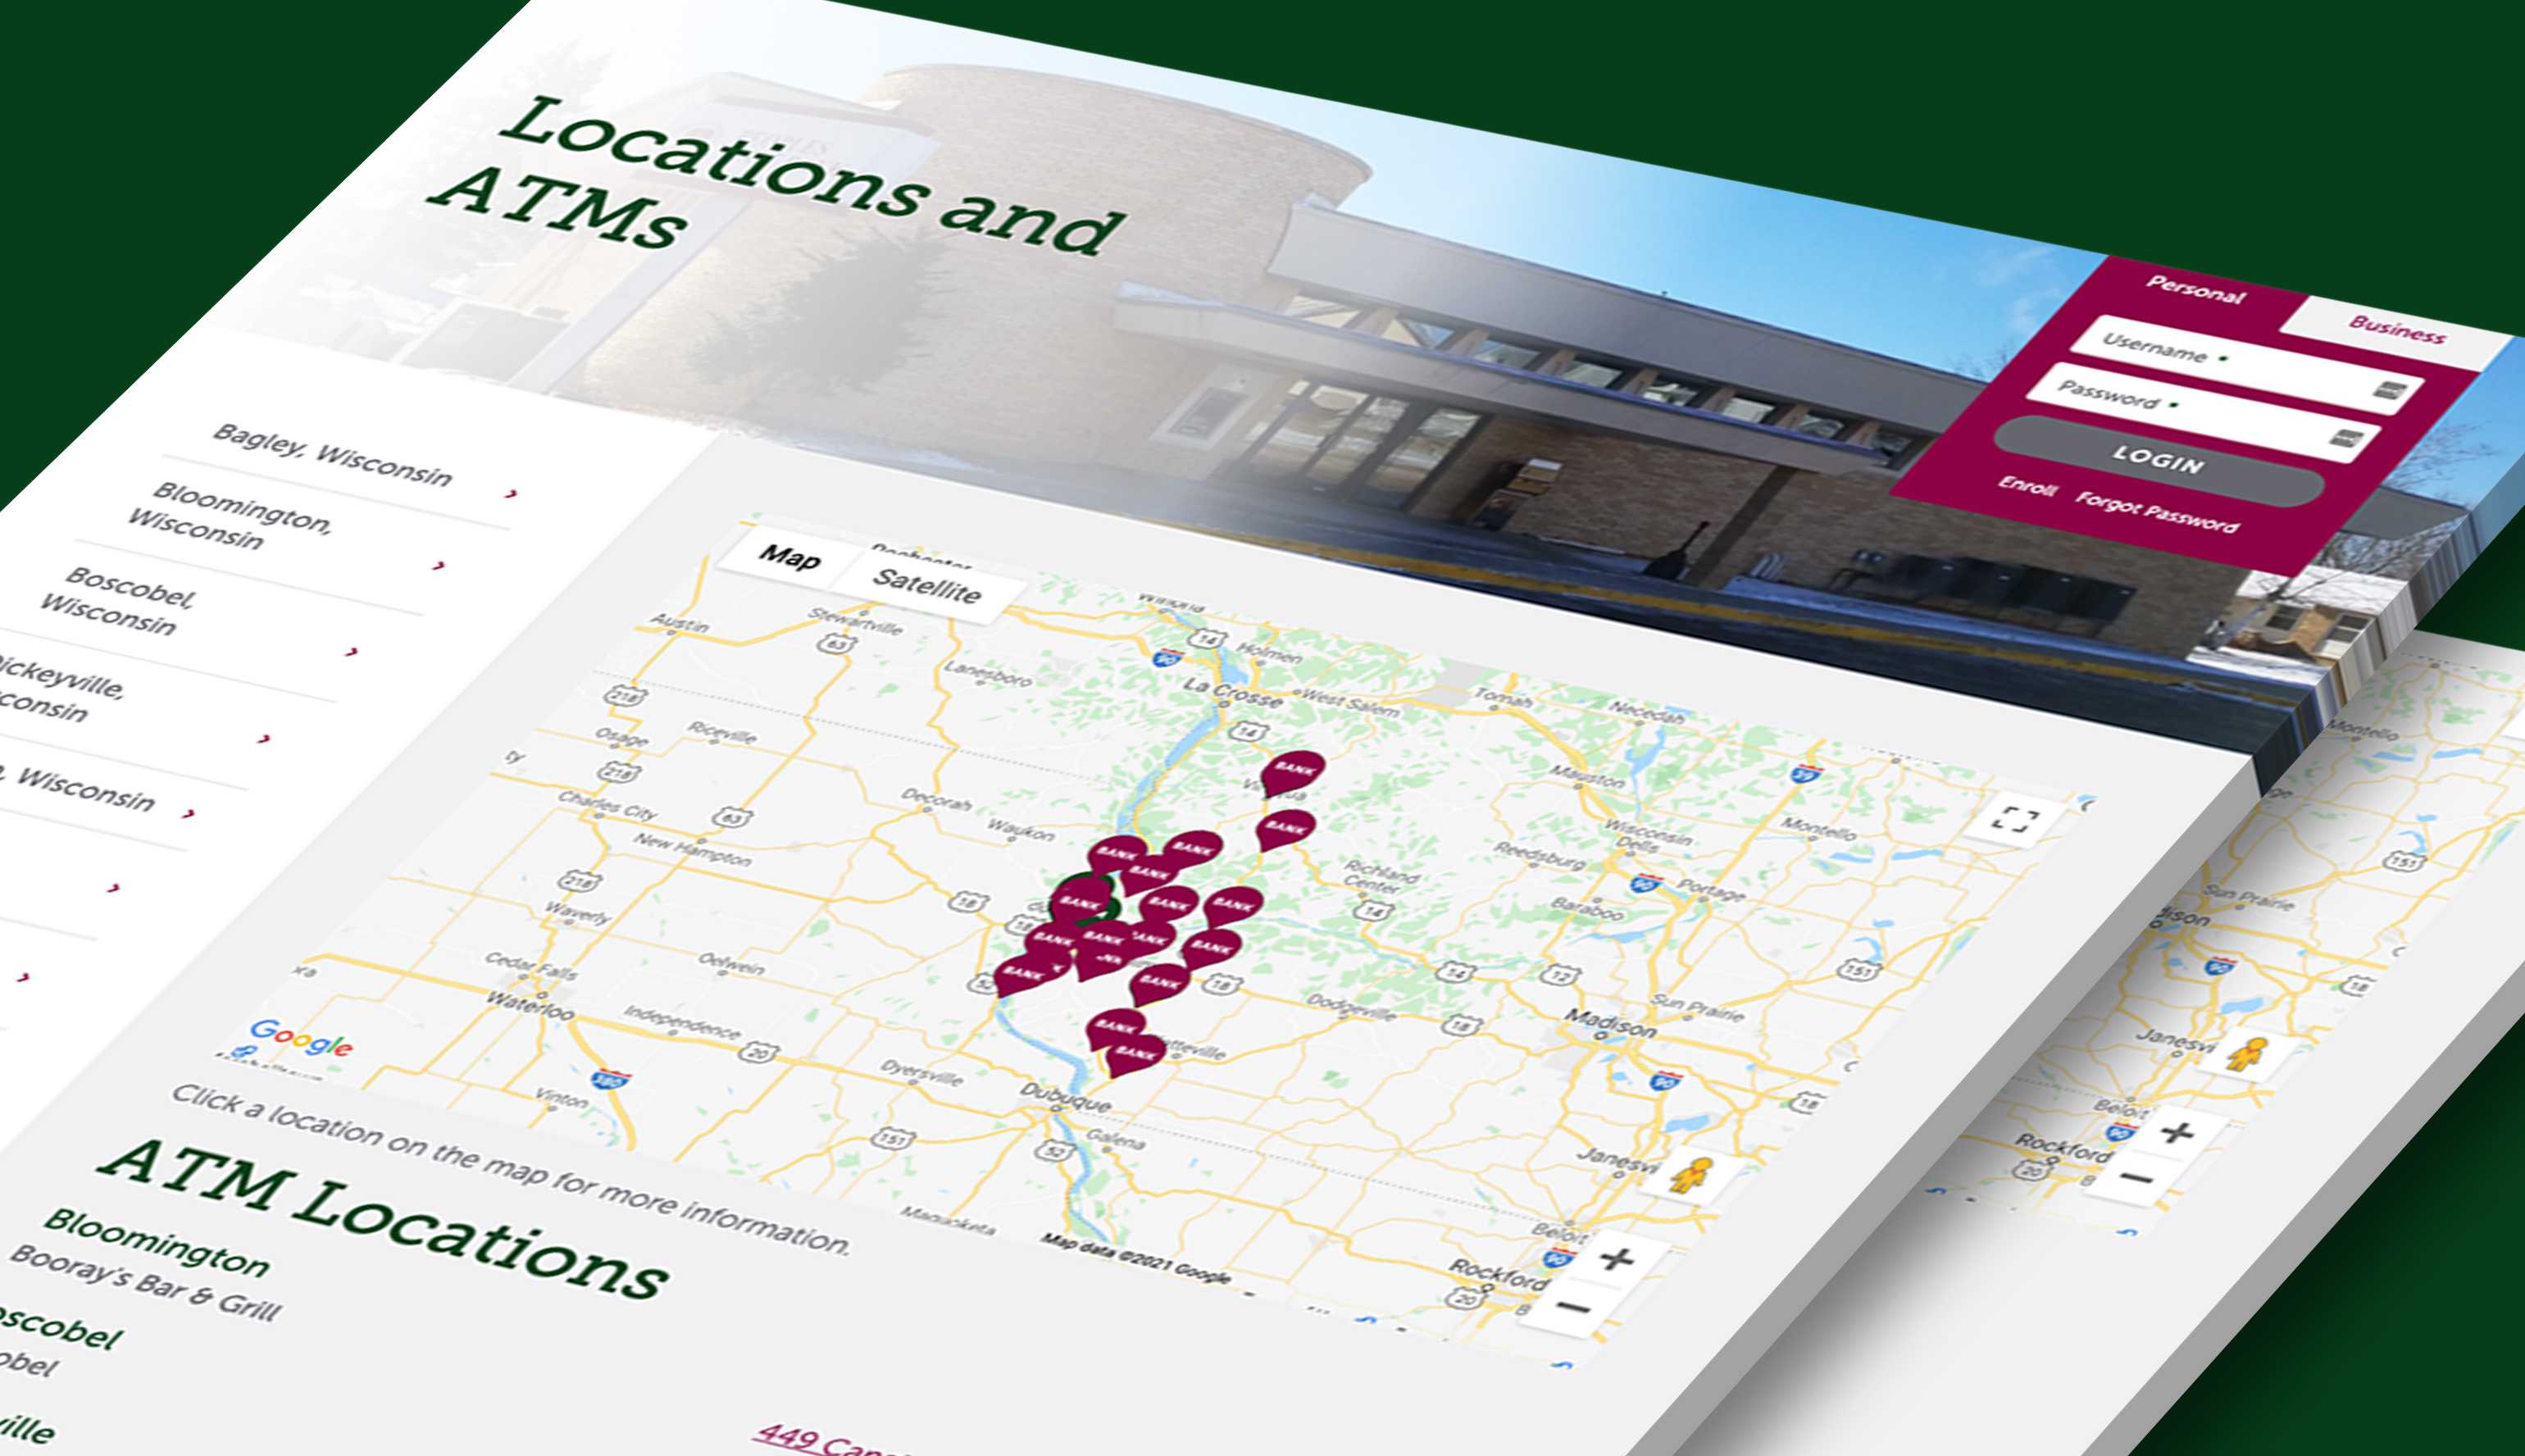 The custom locations page from Peoples State Bank's website